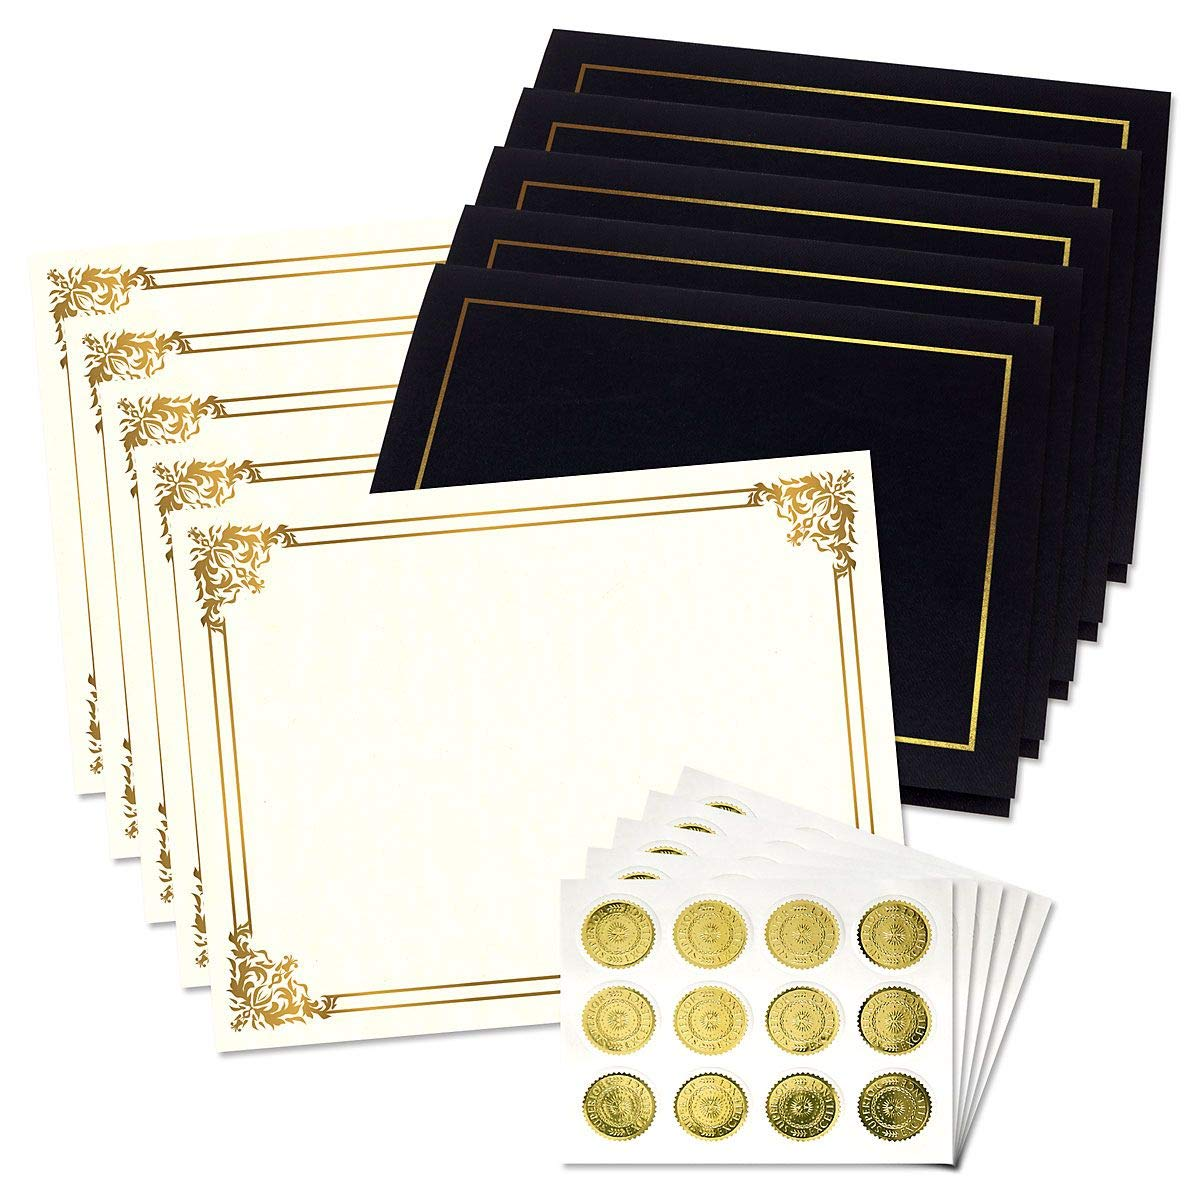 Ornate Empire Award Certificate Collection with Gold Seals - Includes 25 Blank-Inside Certificate Papers, 25 Heavy Linen Black with Gold Border Certificate folders, 25 Gold foil Seals by Fine Stationery